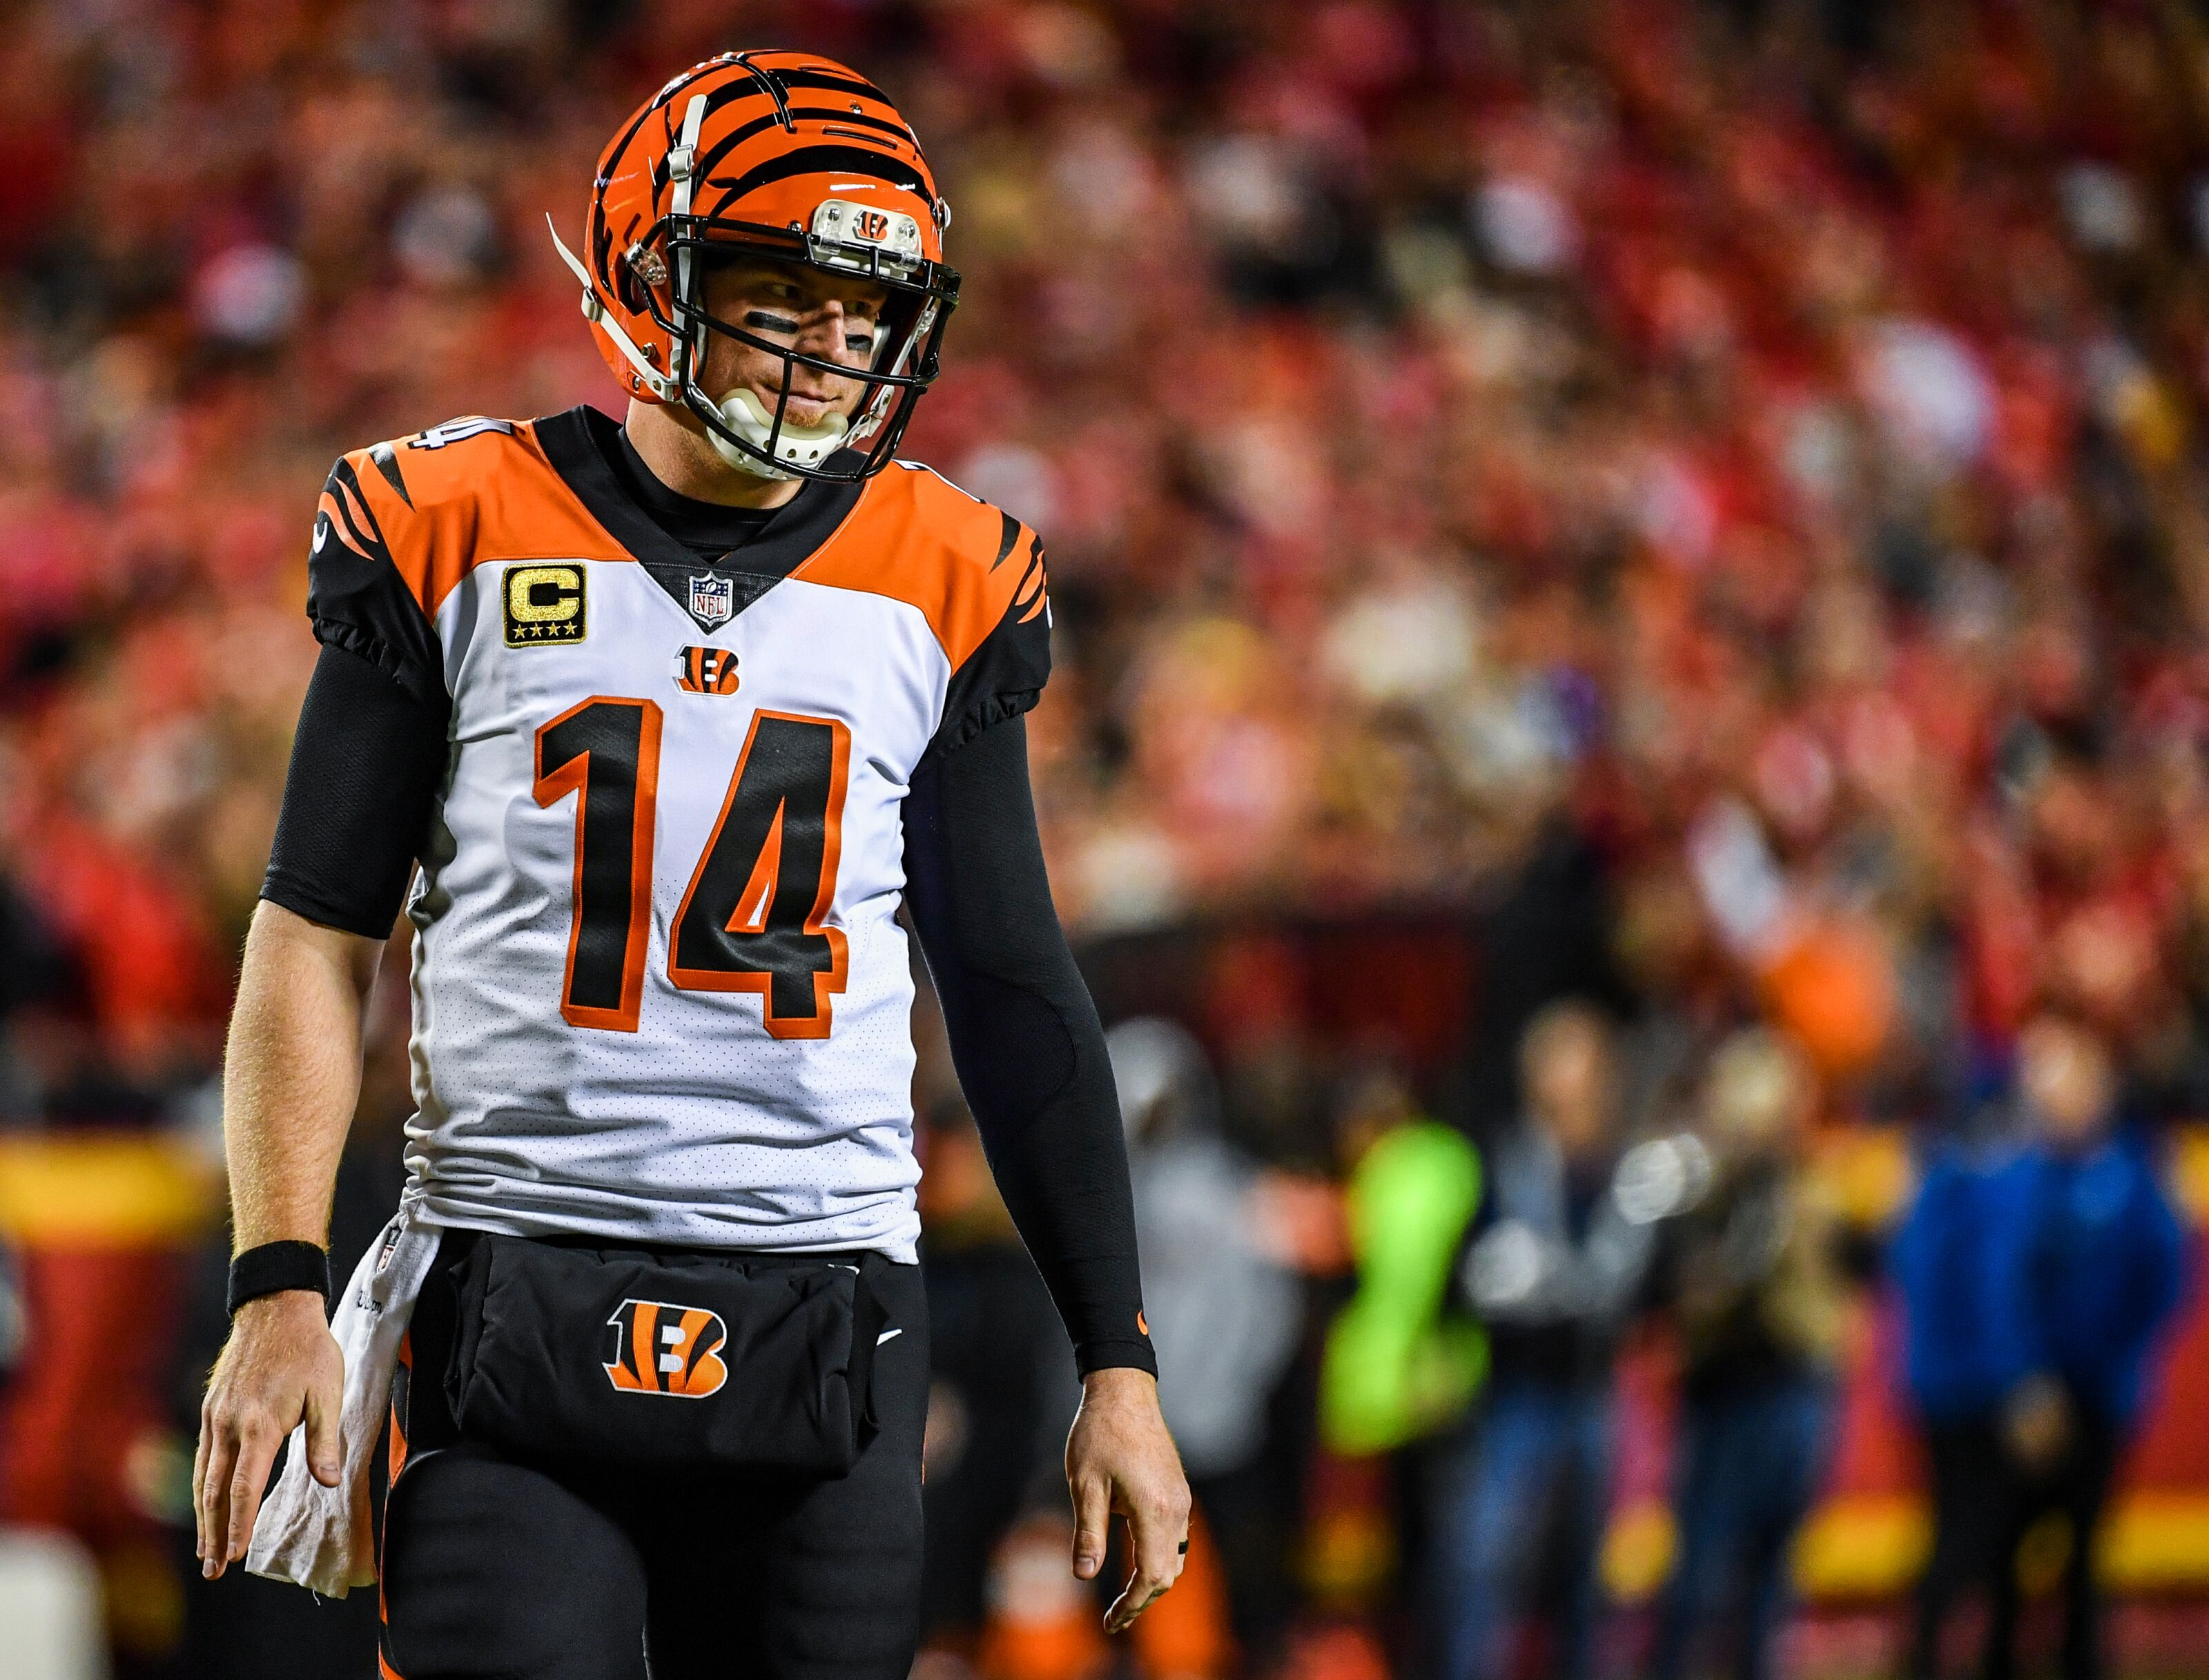 Is the time right for the Bengals to move on from Andy Dalton?